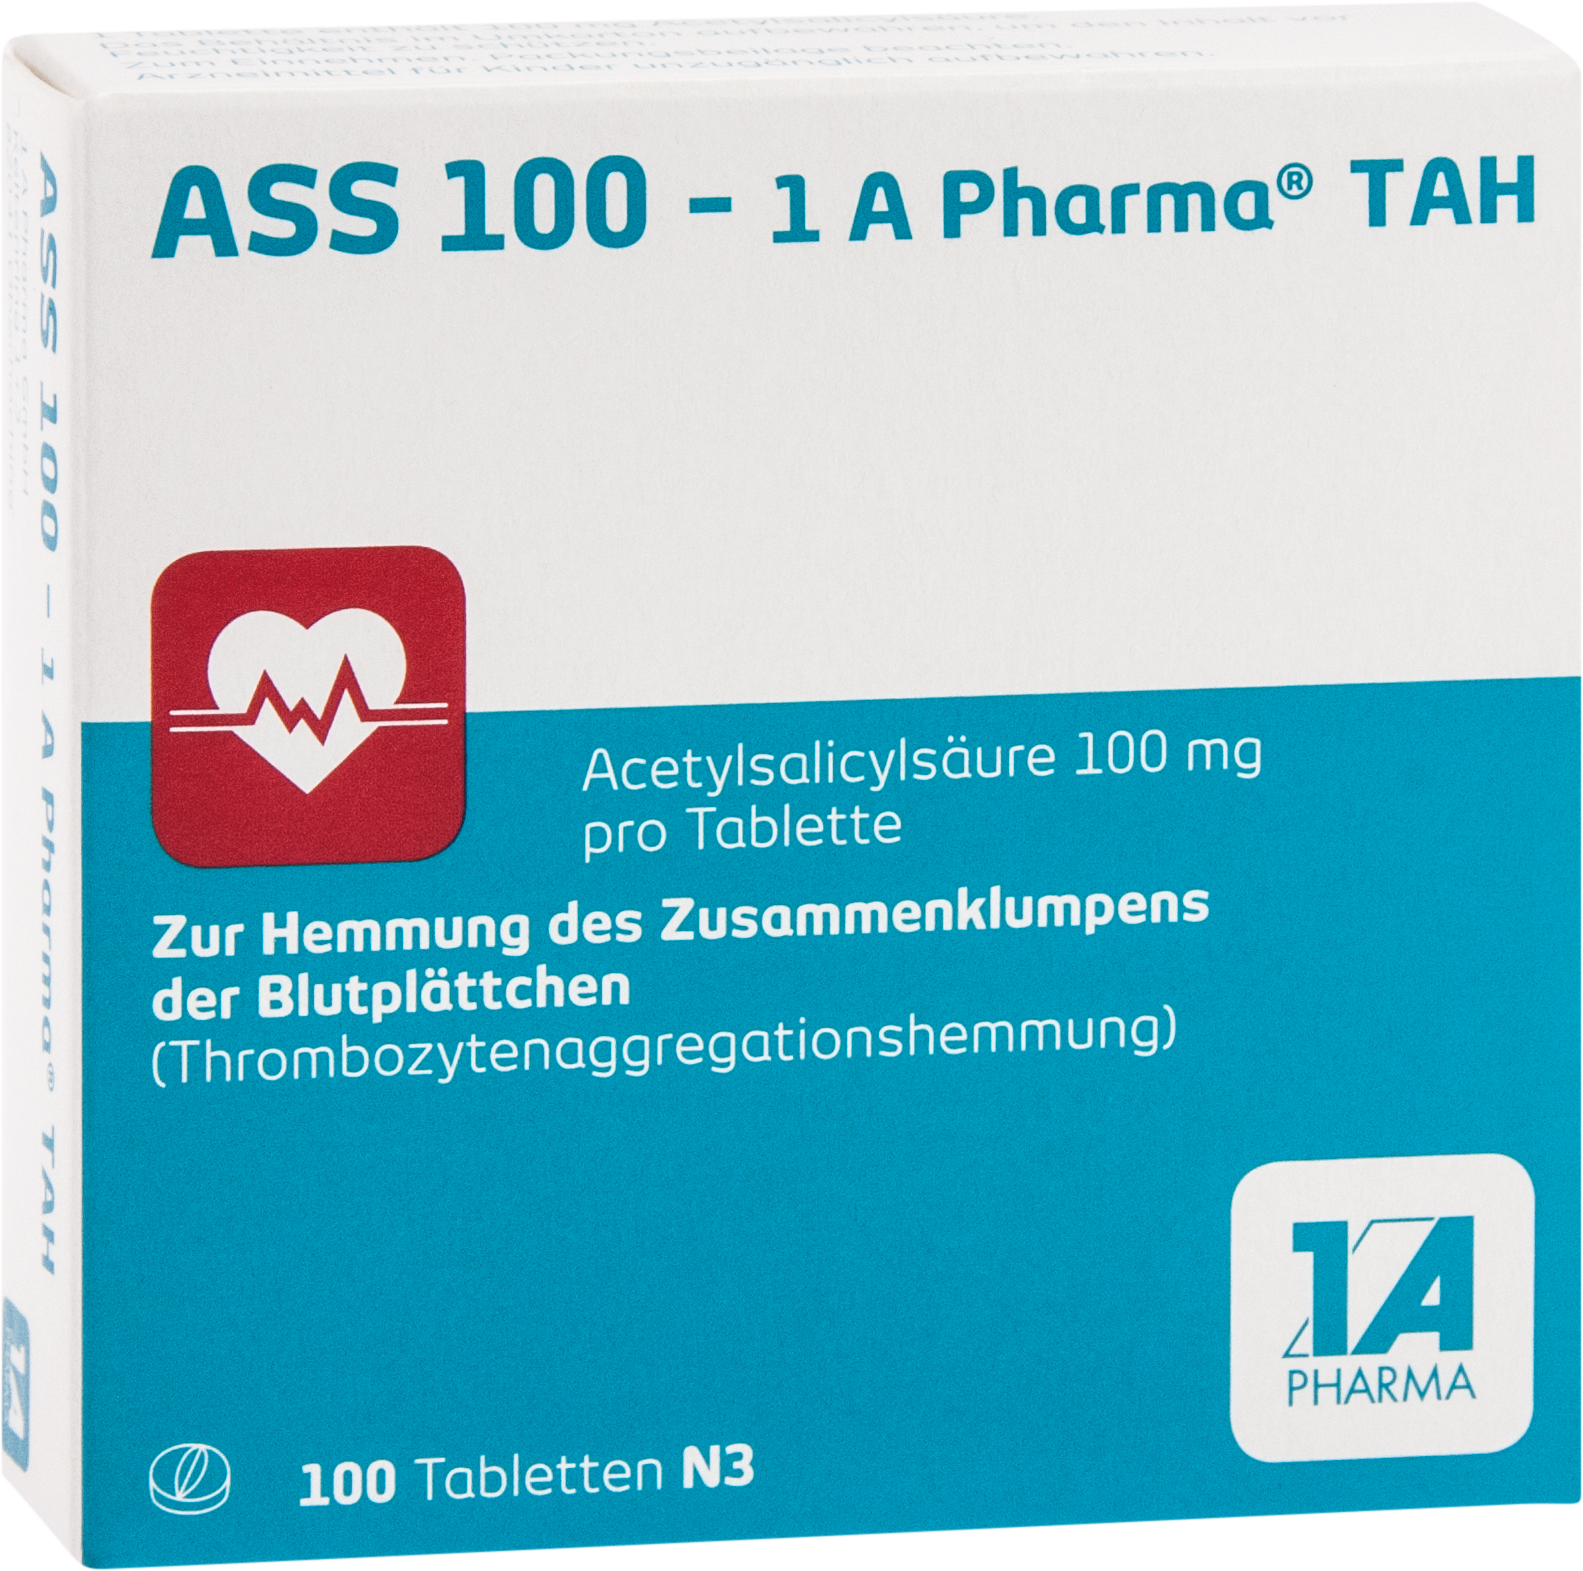 ASS 100 - 1 A Pharma TAH